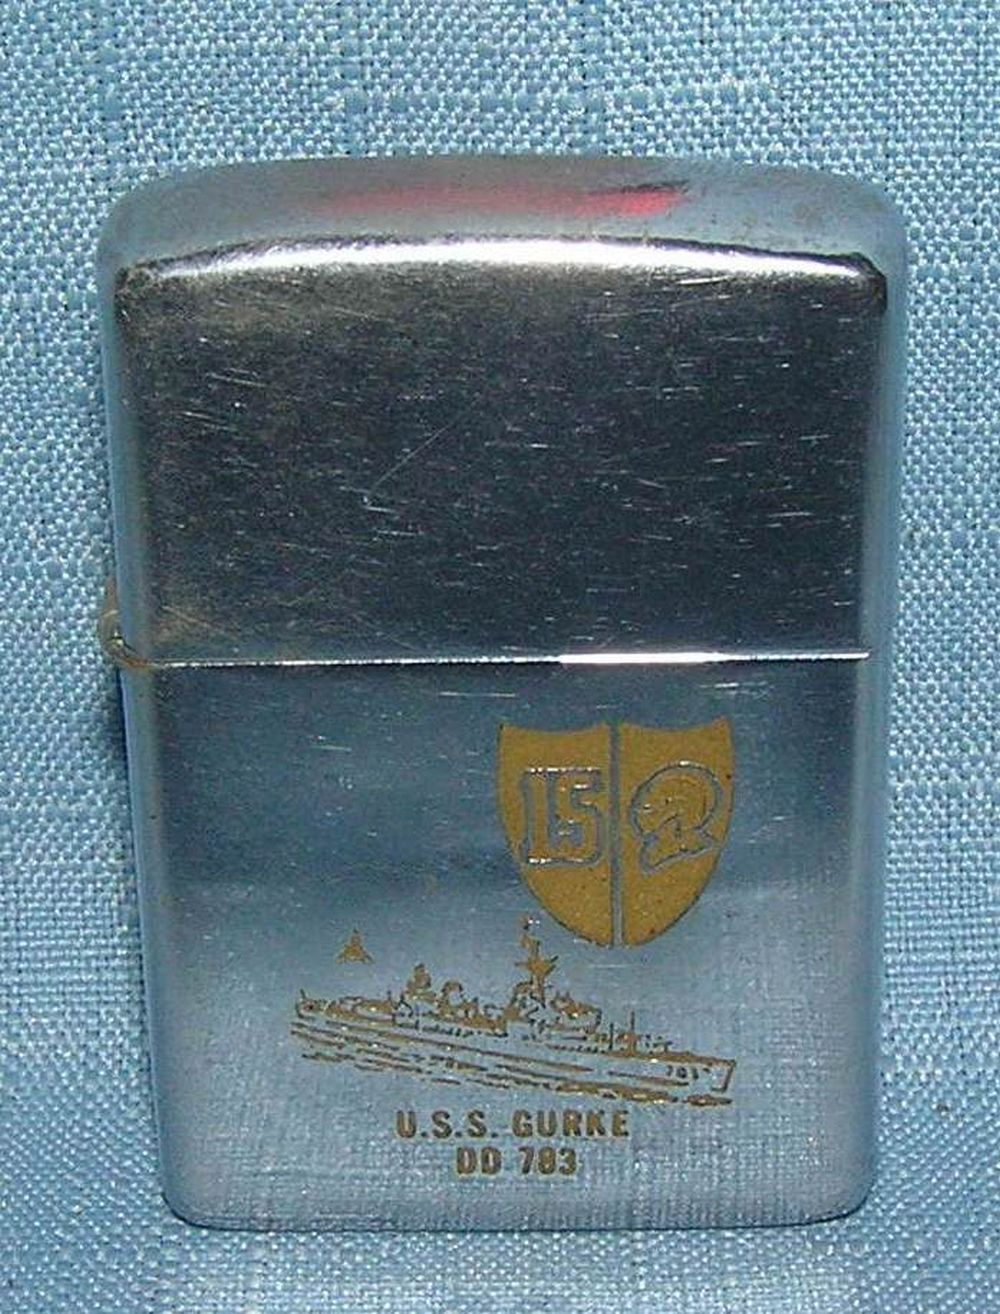 GREAT VIETNAM VETERANS ORIGINAL ZIPPO CIGARETTE LIGHTER